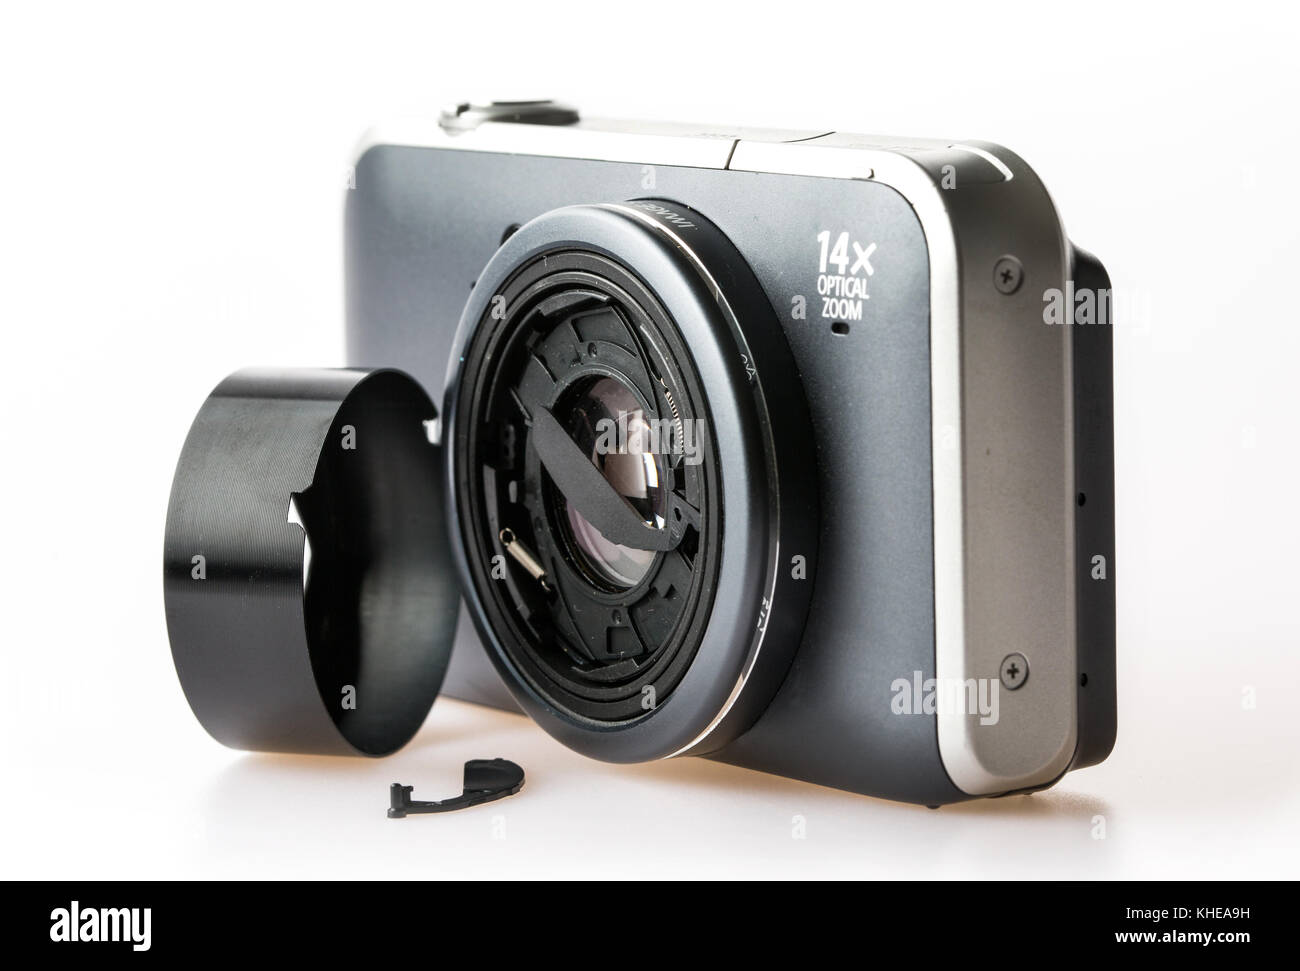 A dropped broken smashed compact digital camera - Stock Image